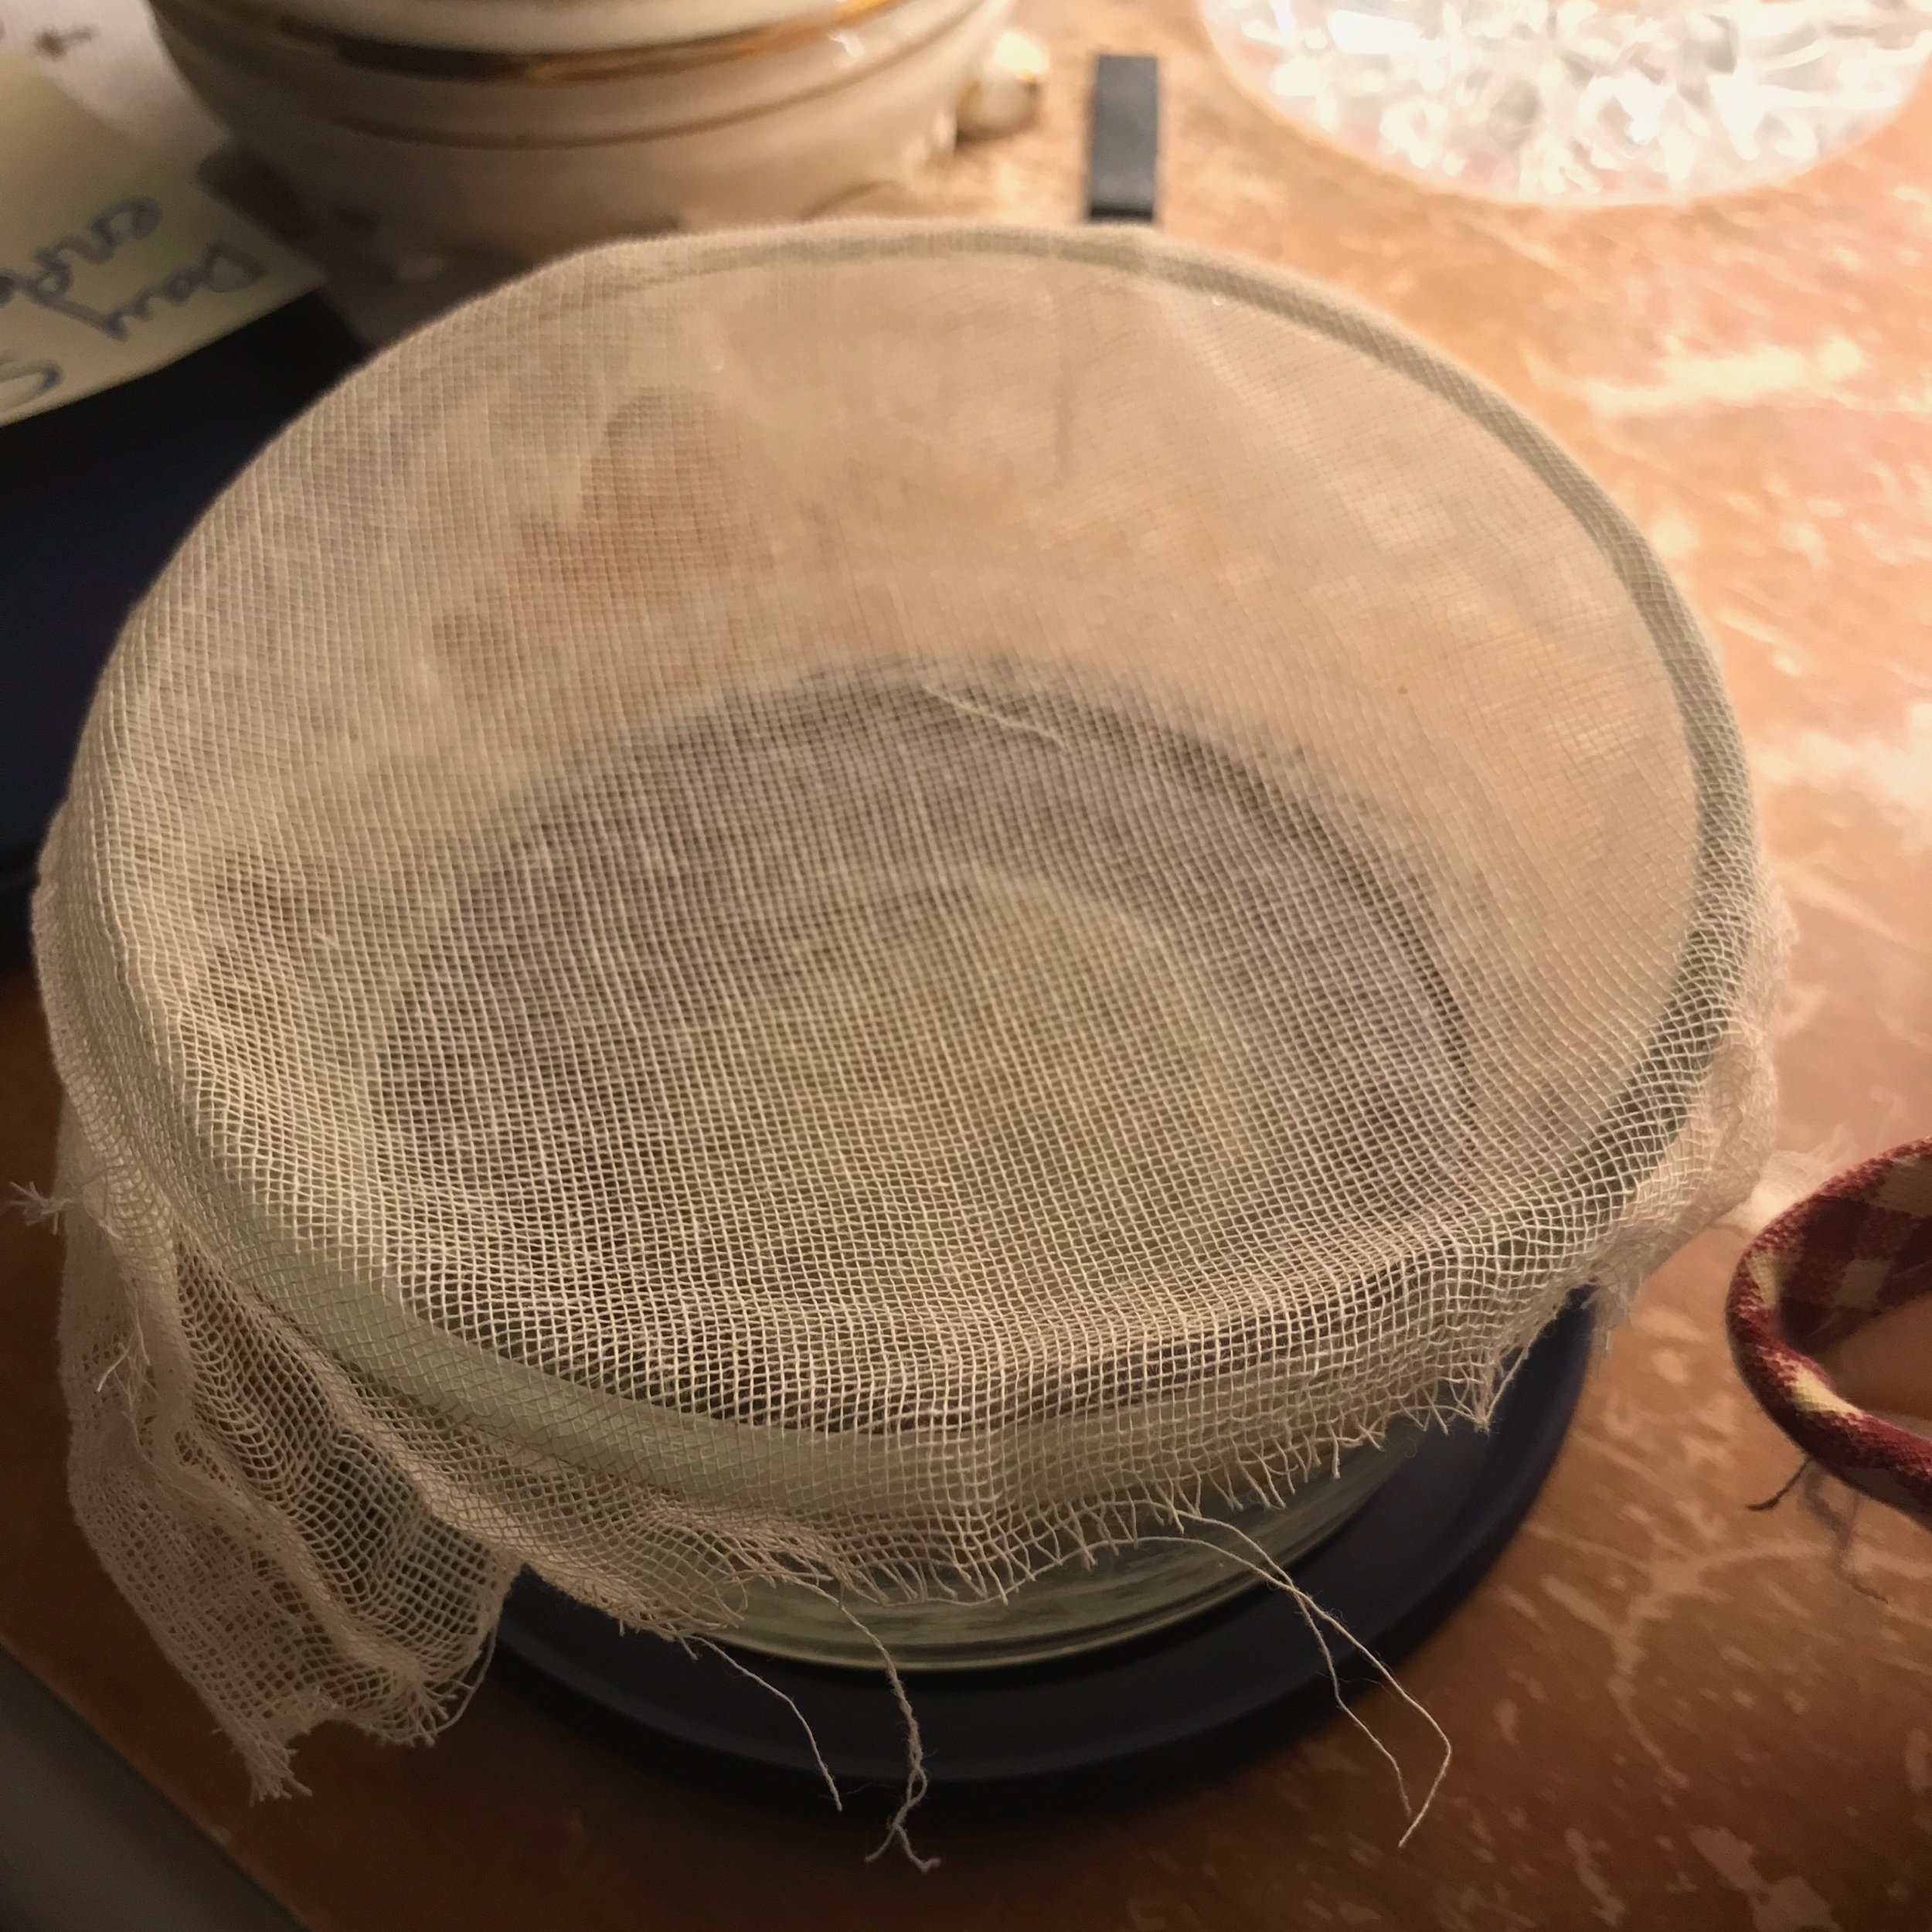 Alcohol in pyrex container with cheesecloth on top.